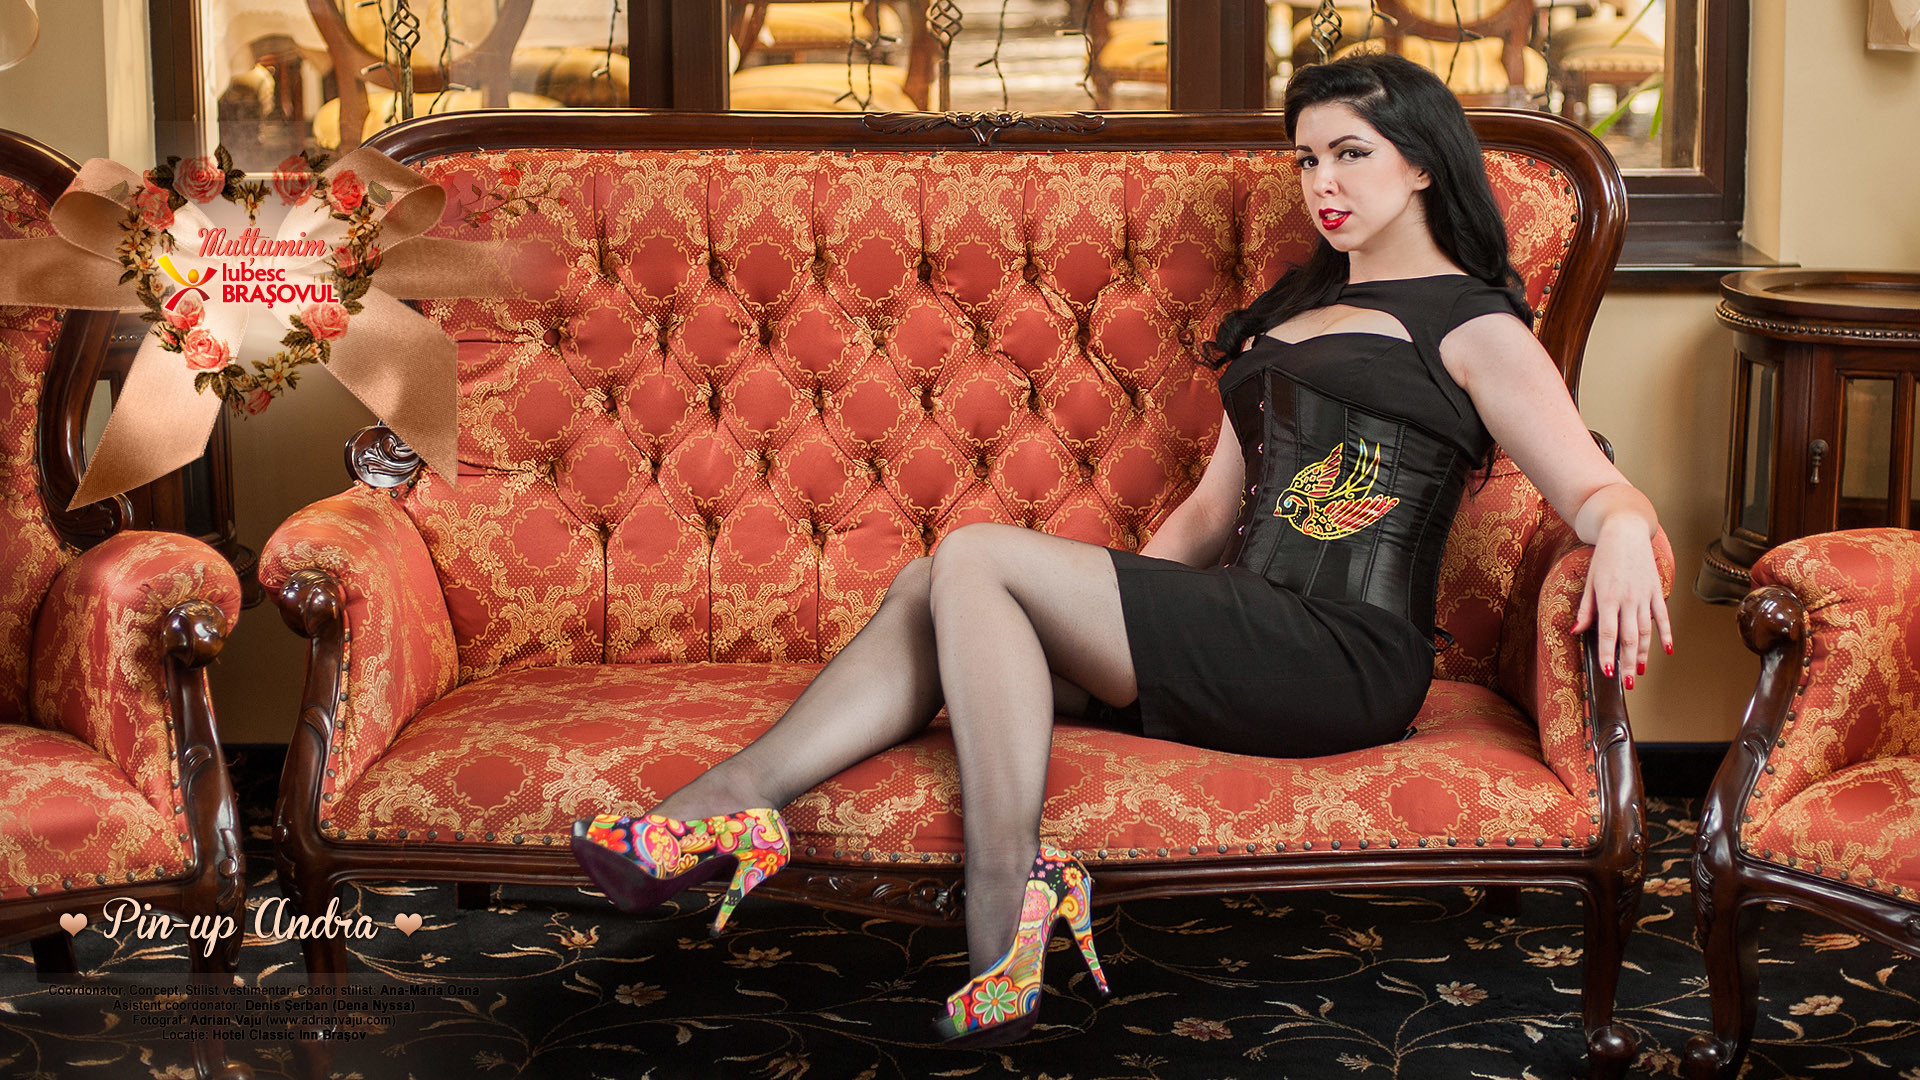 Wallpaper – Pin-up Andra – septembrie 2012